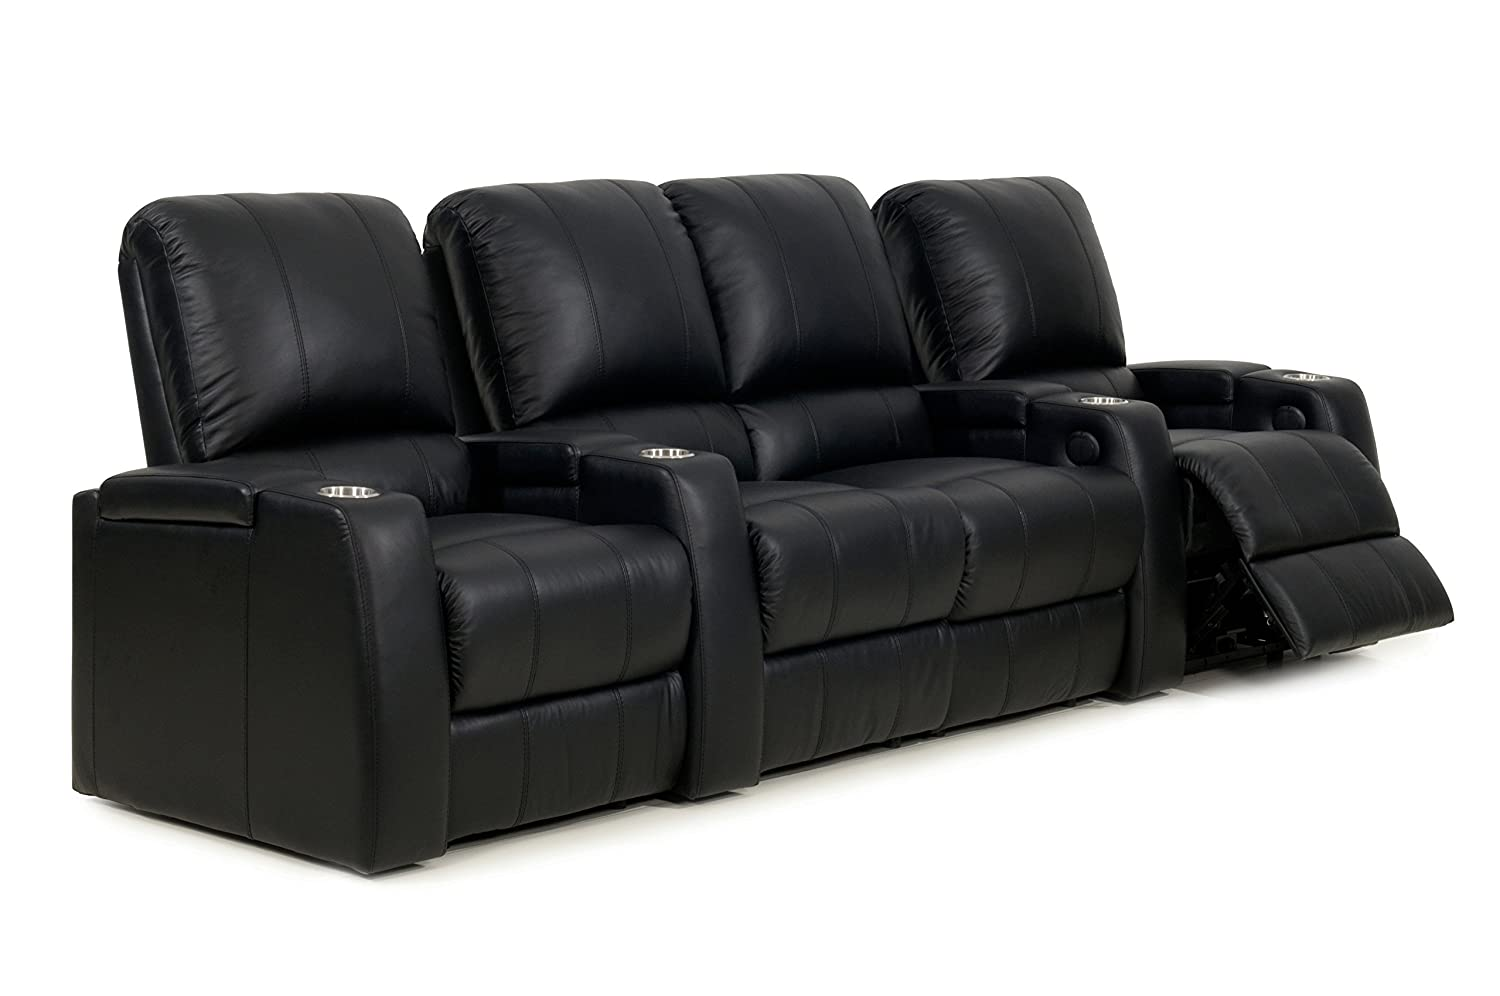 Amazon: Storm XL850 Home Theater Sectional Couch - Octane Seating -  Black Leather - Manual Recline - Straight Row Of 4 Chairs With Middle  Loveseat: